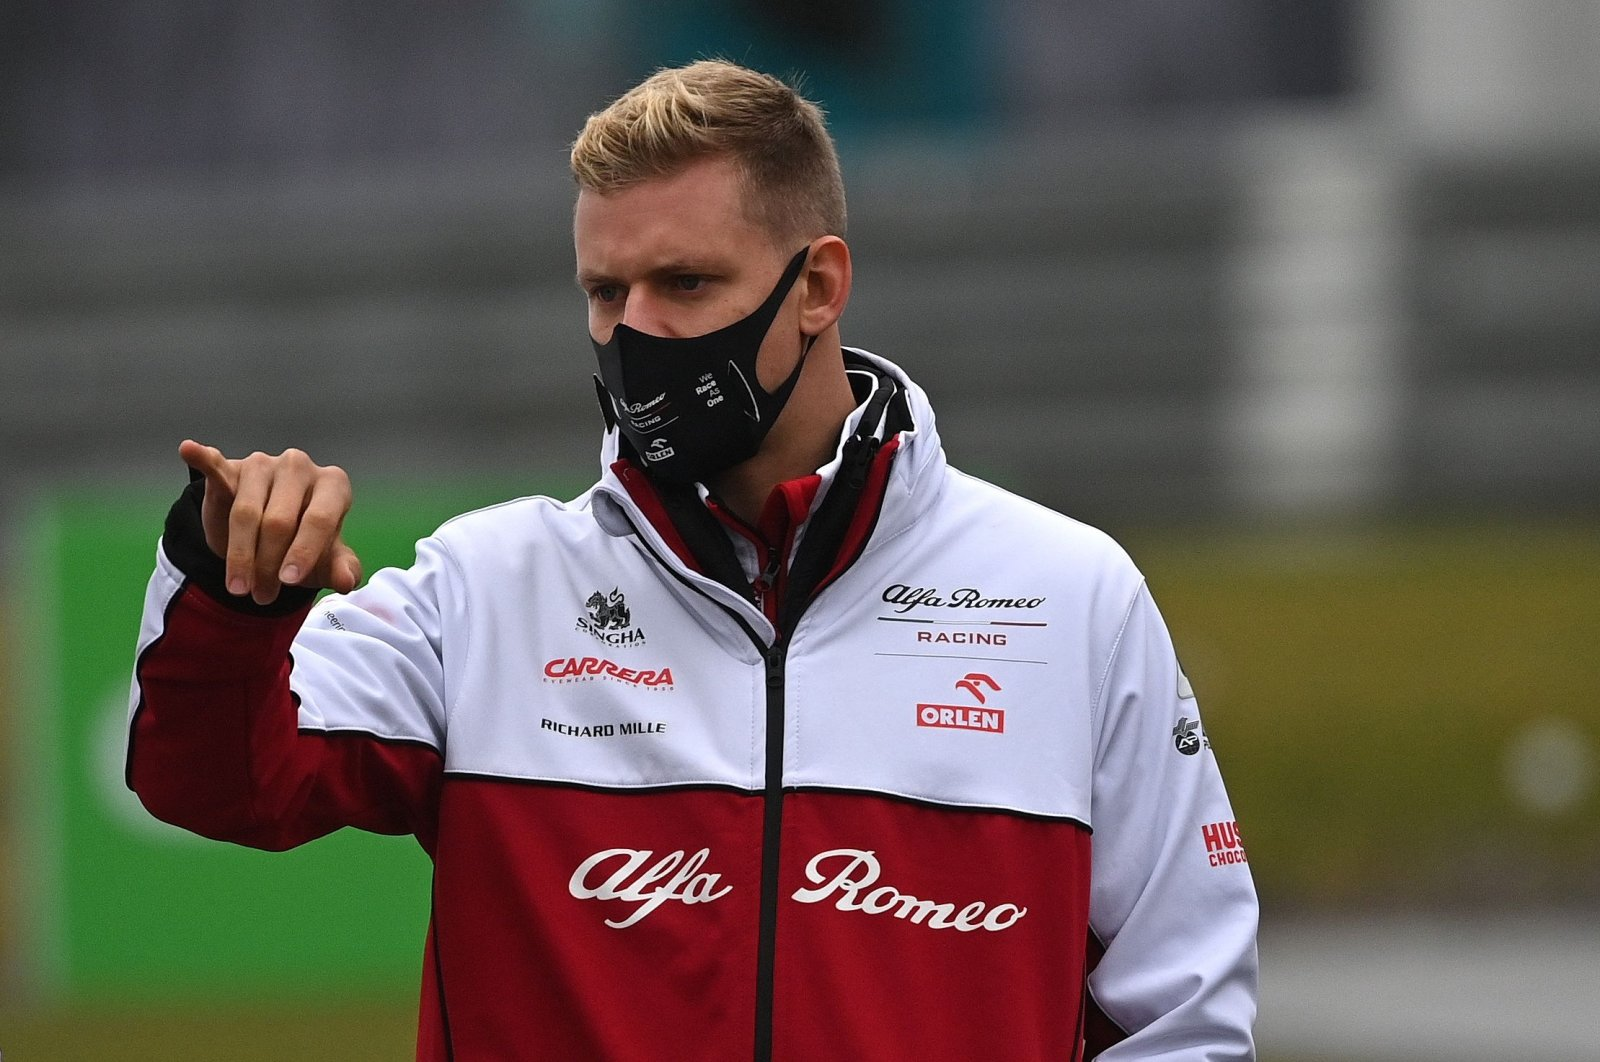 Alfa Romeo driver Mick Schumacher inspects the circuit ahead of F1 Eifel Grand Prix, in Nurburg, Germany, Oct. 8, 2020. (AFP Photo)